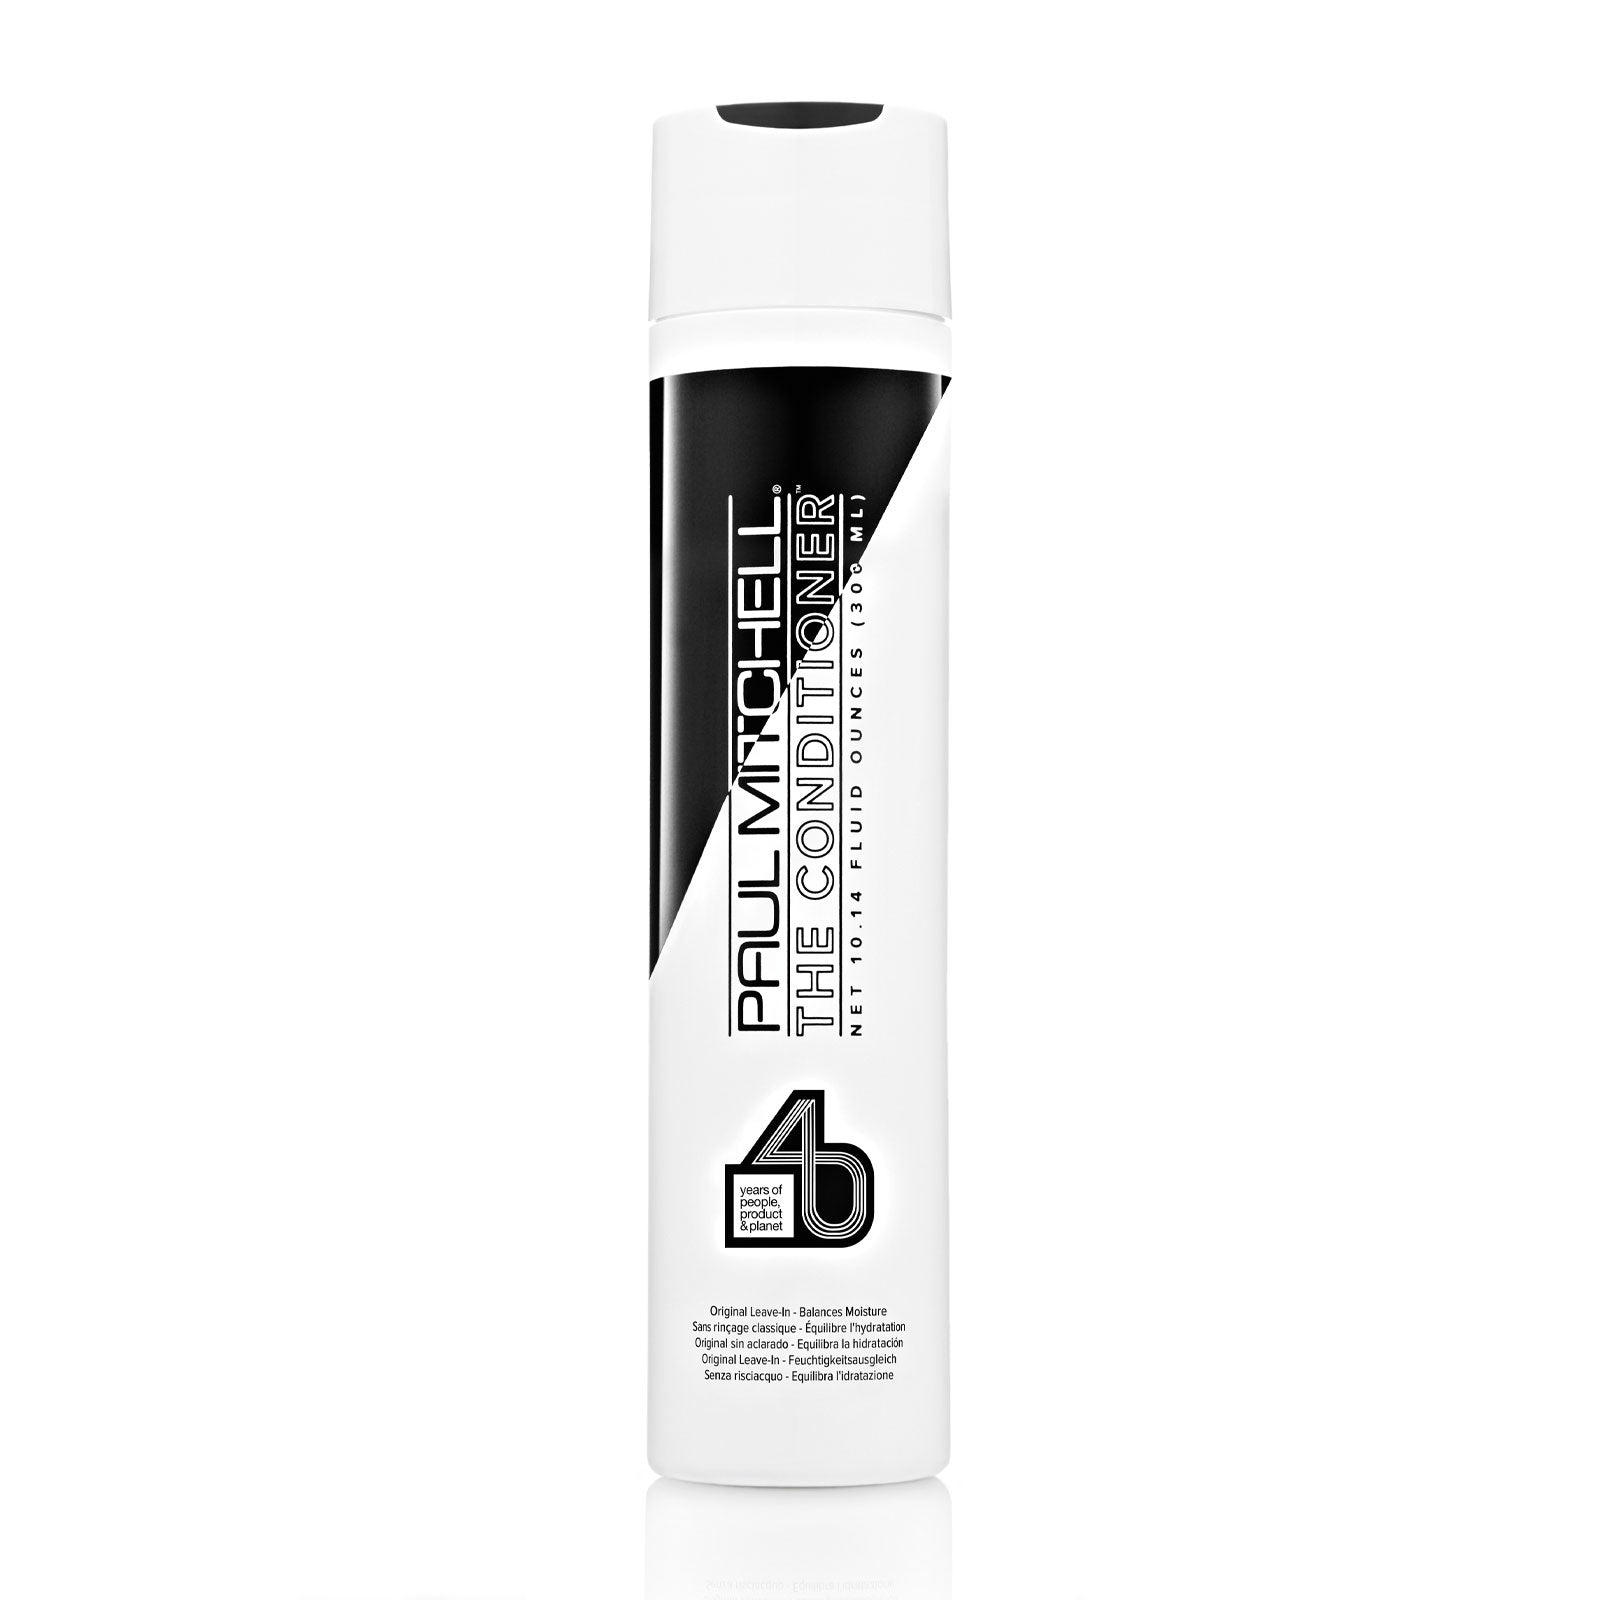 Paul Mitchell Original The Conditioner™ Leave-in Moisturizer 300ml